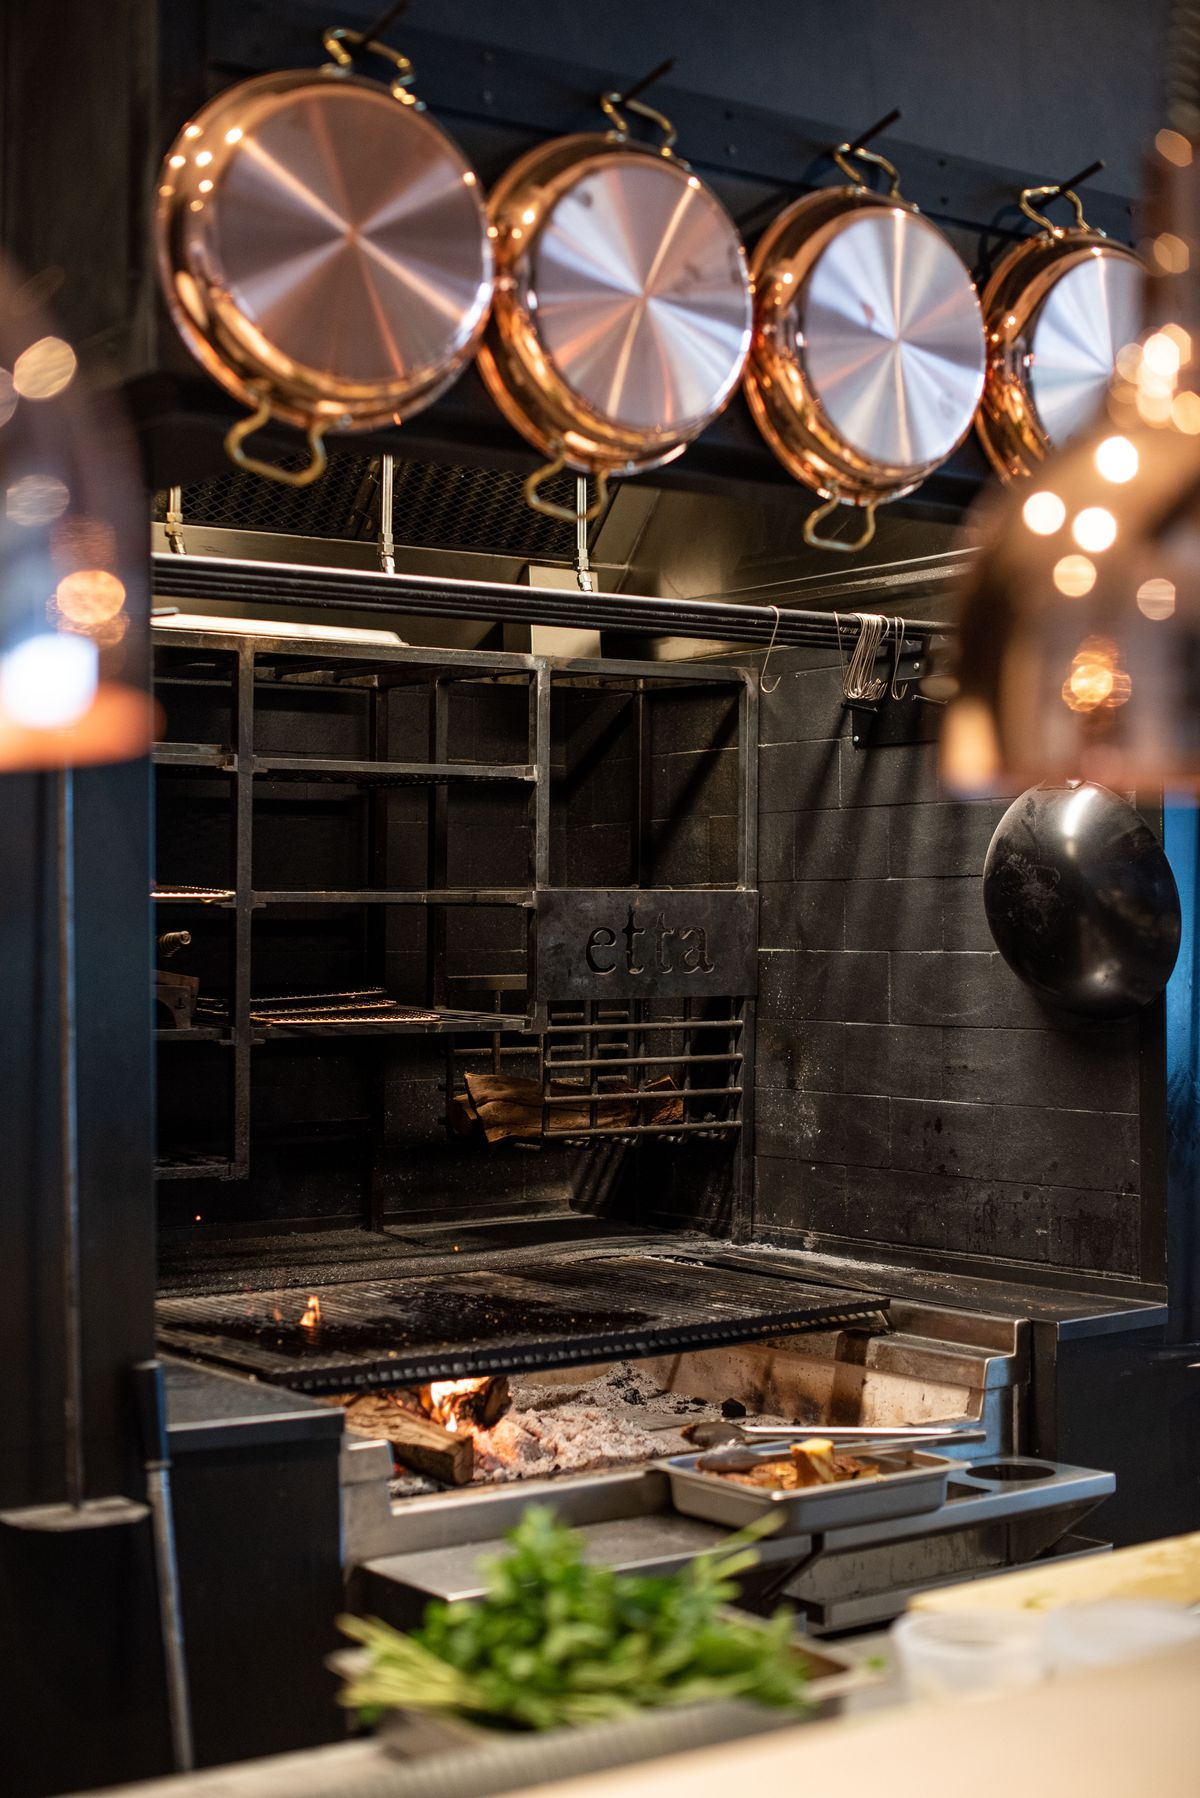 A vertical photo of a deep black metal hearth with wood as fuel to cook meats.